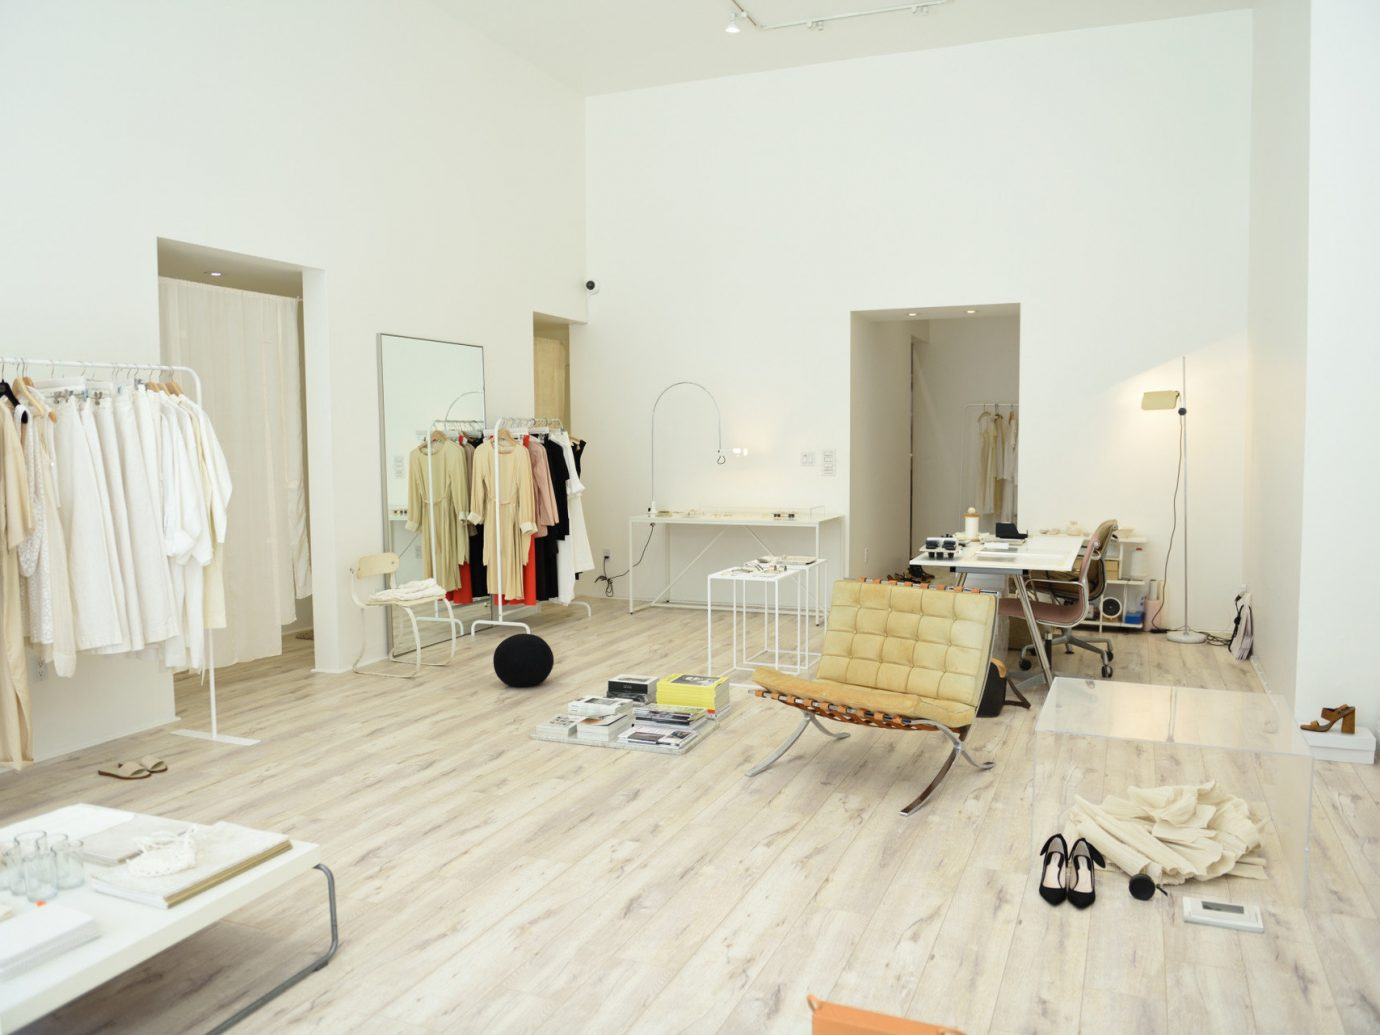 airy apparel Boutique clean clothes clothing Hip interior Luxury neutral tones Shop shopping store Style + Design trendy indoor wall room property floor hardwood home living room interior design flooring wood real estate Design laminate flooring furniture wood flooring apartment Bedroom